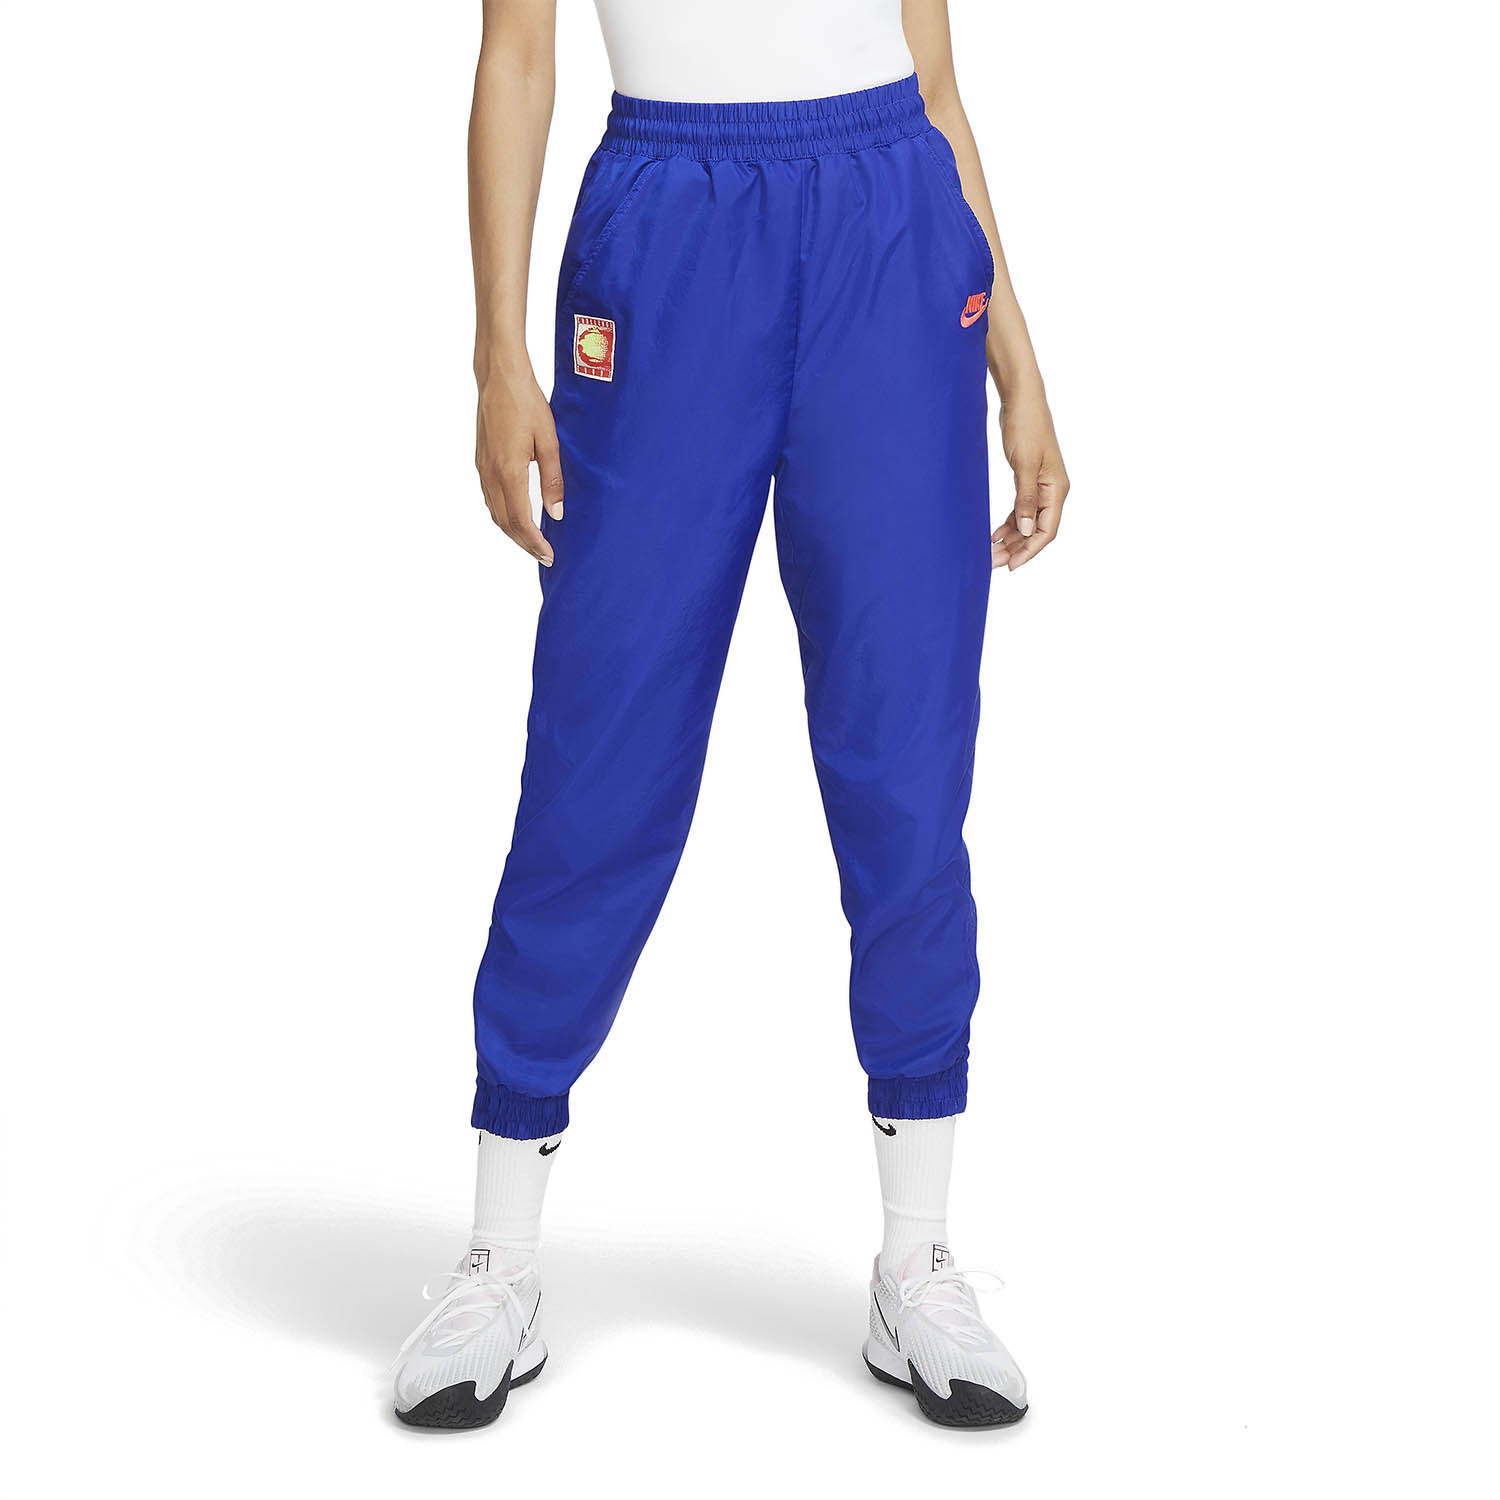 Nike Challenge Court Pants - Ultramarine/Hot Lime/White/Solar Red